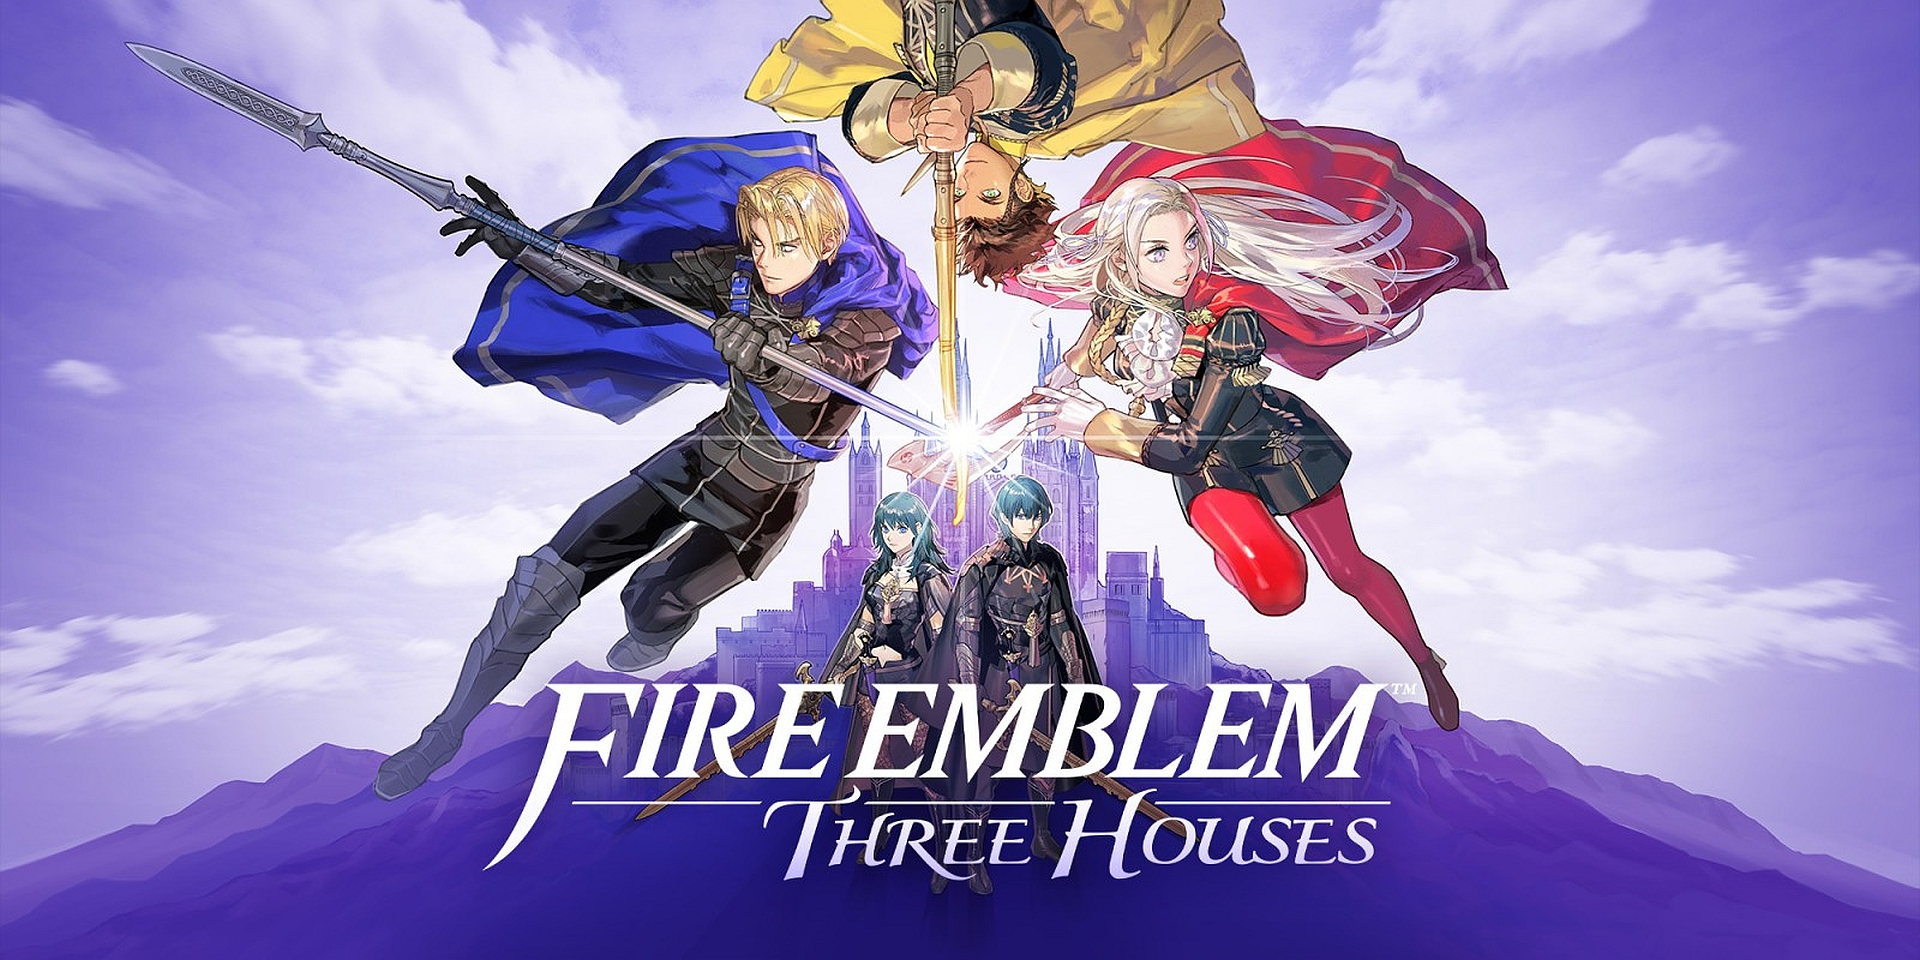 Fire Emblem: Three Houses game